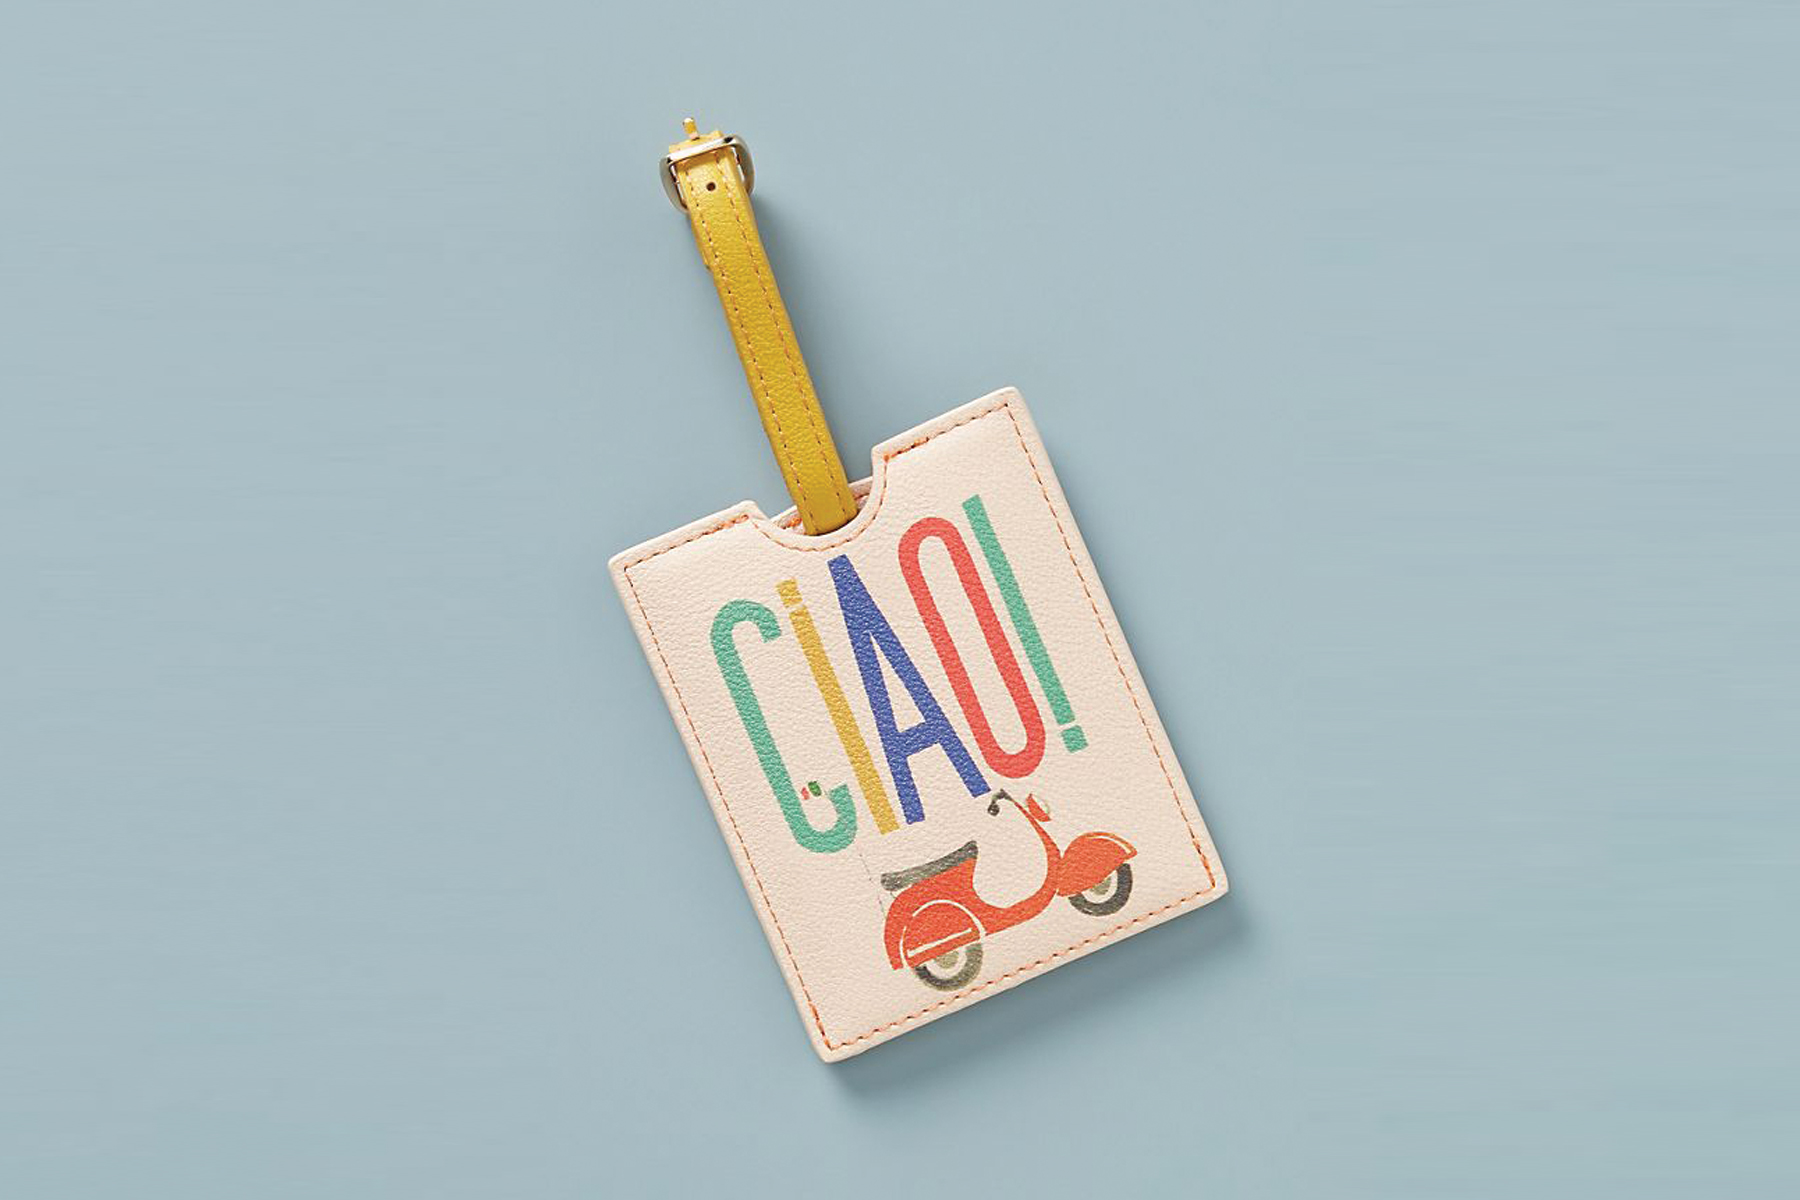 """Luggage tag with design saying """"Ciao!"""" with a red moped"""